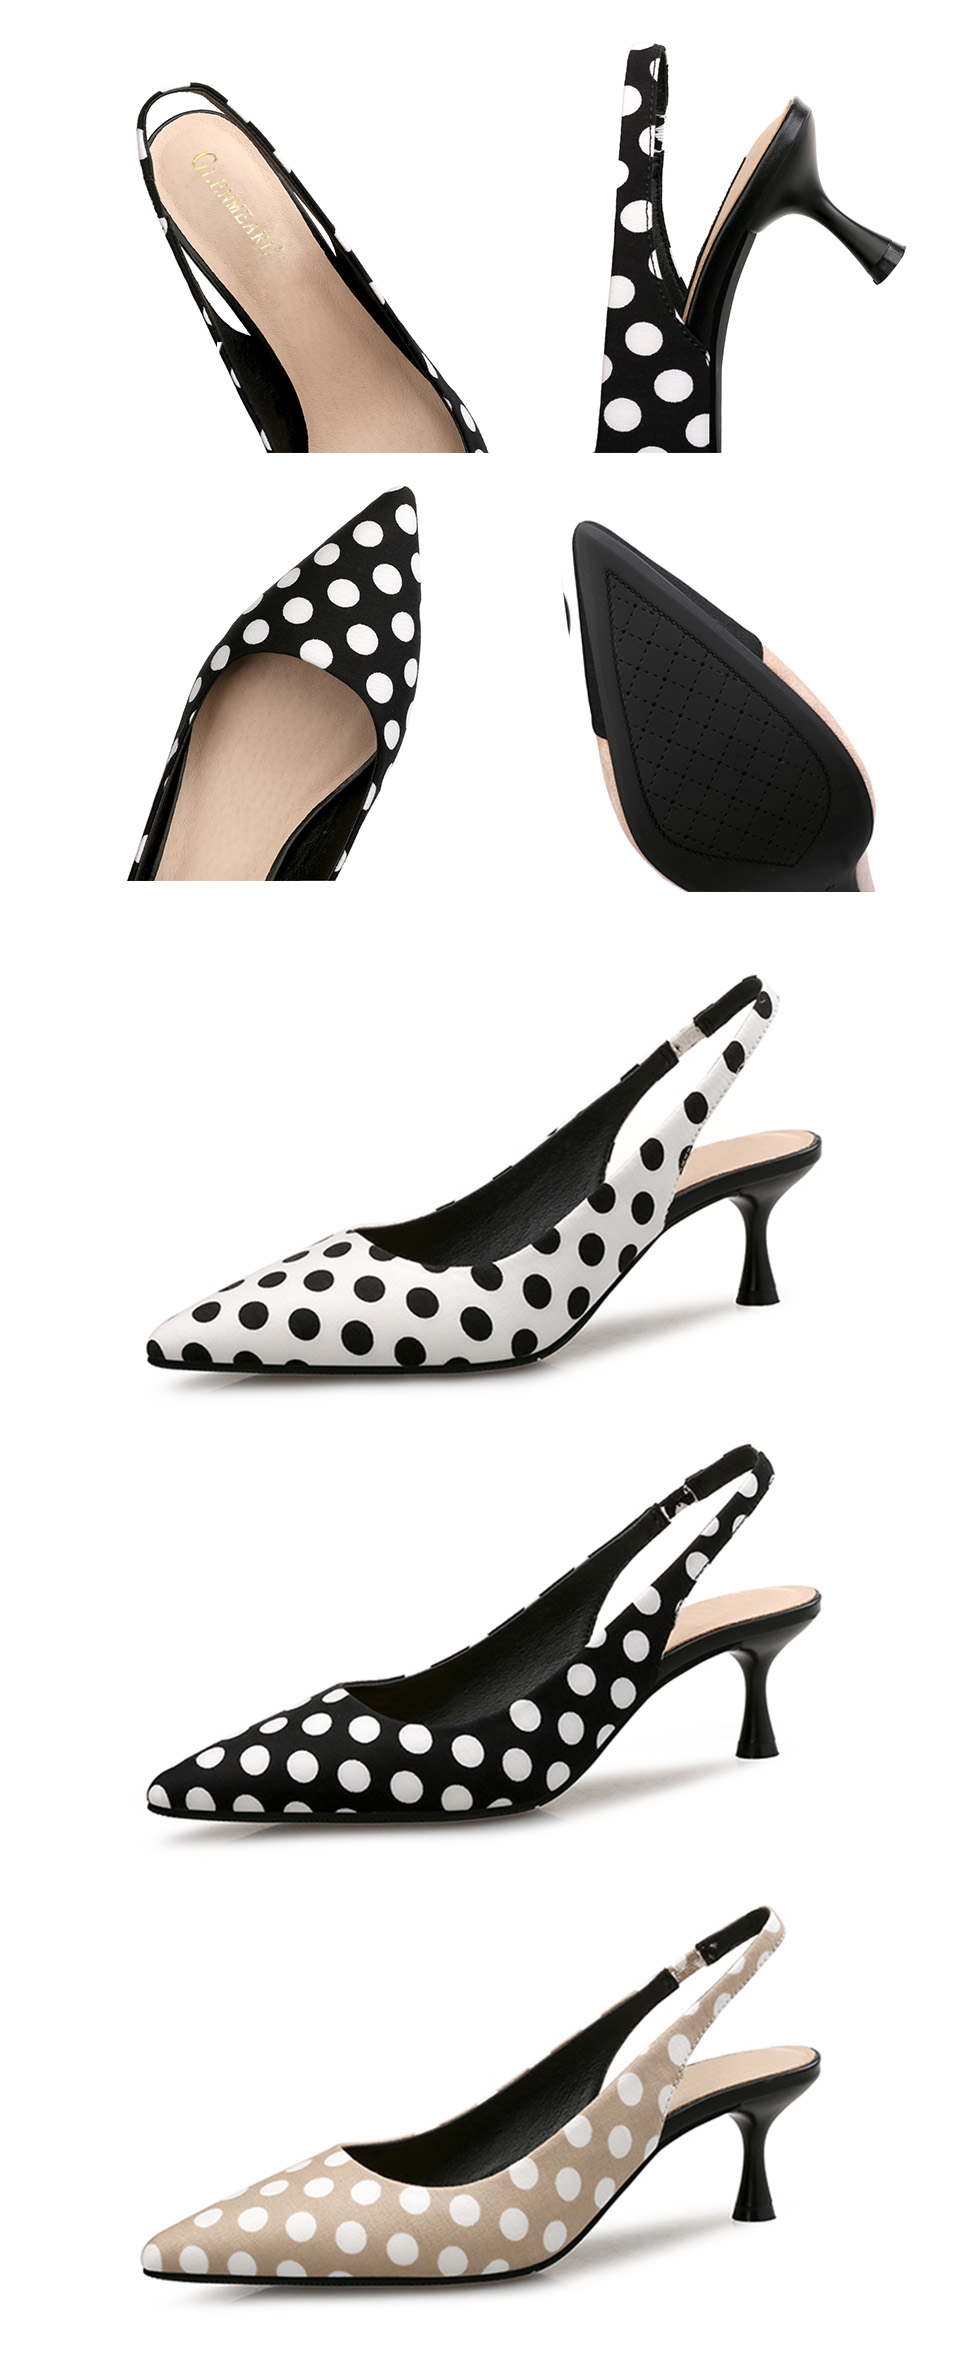 Brand Women Pumps High Heels Shoes Leather Spring Wave Point Single Women Dress Shoes Thin Heels Pointed Toe Party Pumps Lady 45 4